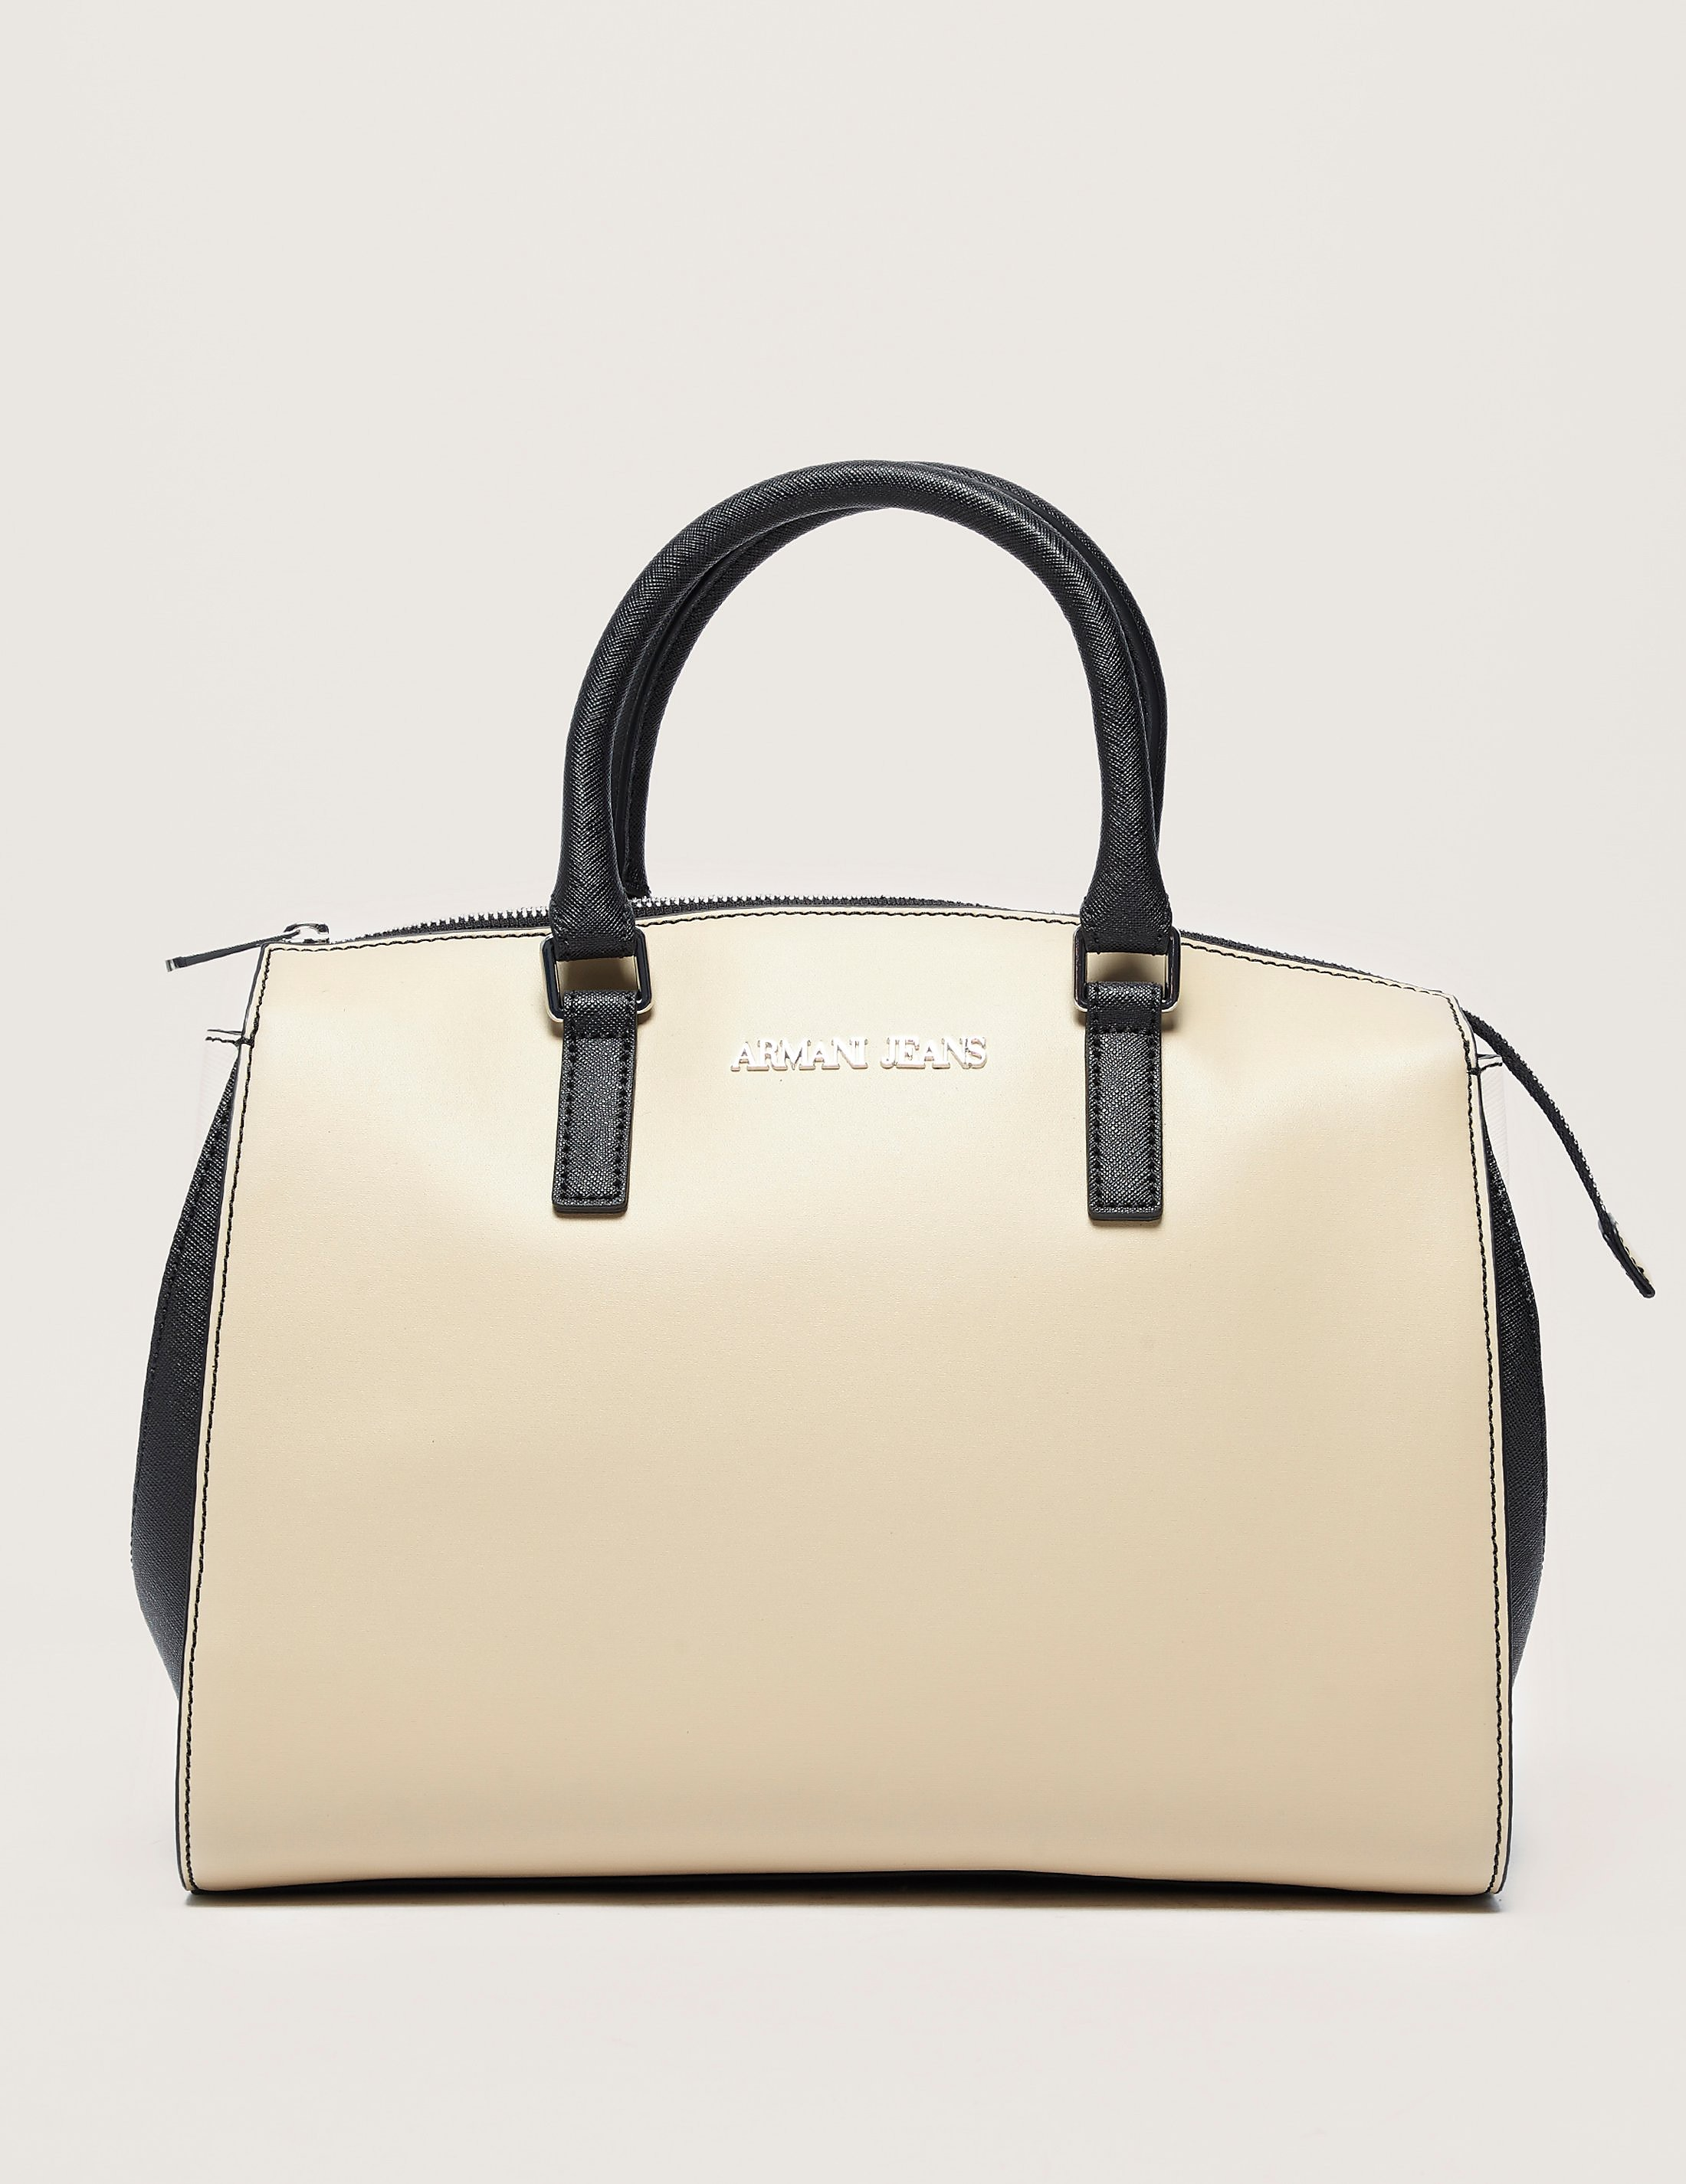 Armani Jeans Colour Block Satchel